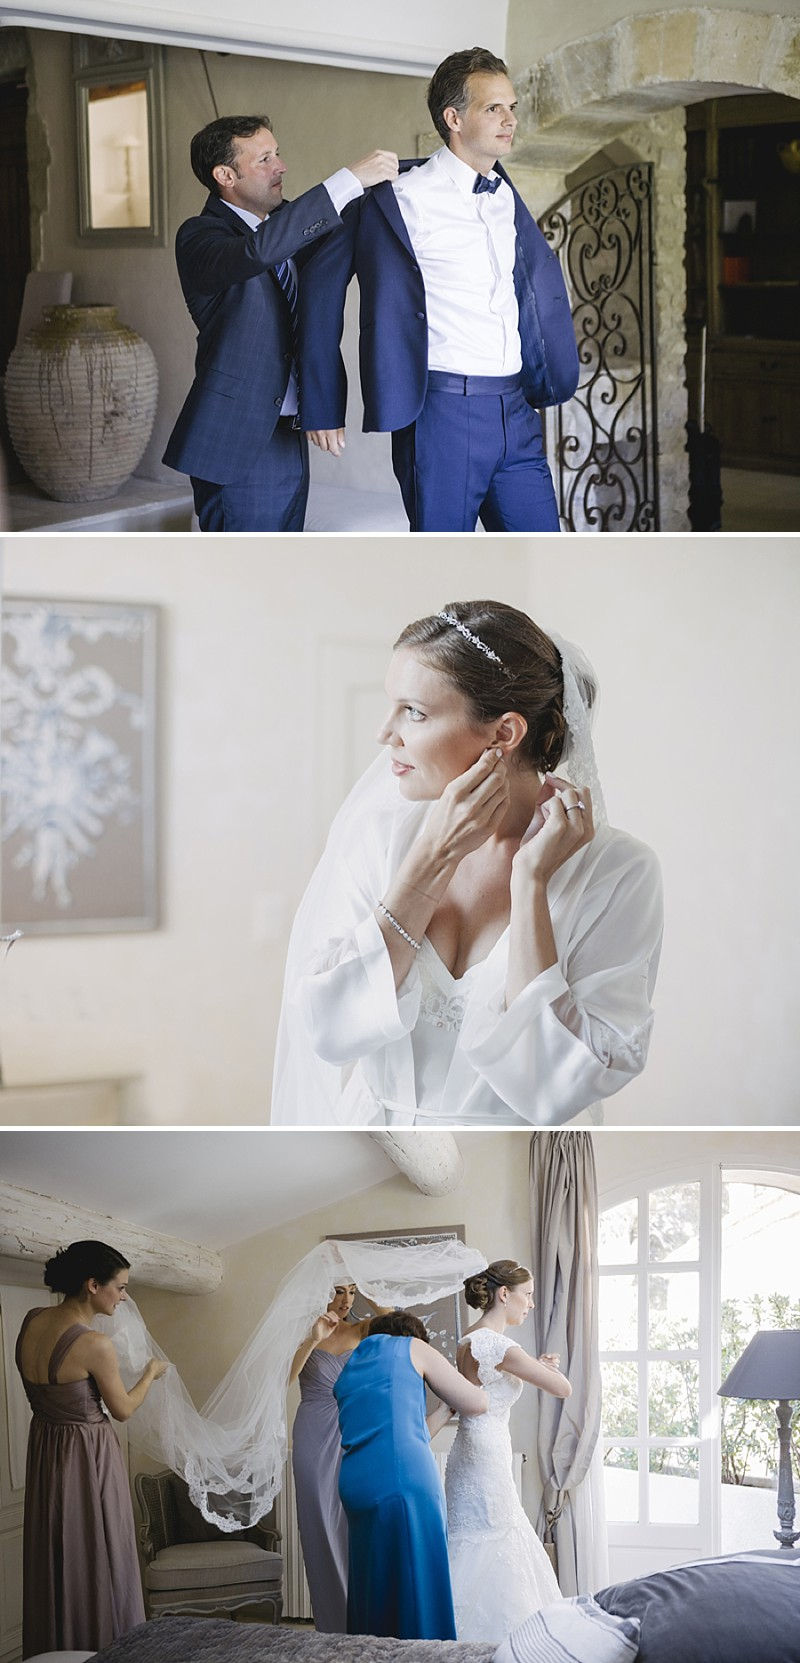 Elegant Wedding At Le Mas De La Rose Provence With Bride In Lace Fishtail Gown By Pronovias And Groom In Navy Armani Tuxedo With Images From Jo Hastings Wedding Photography 0003 La Sophistication Et Simplicité En Provence.